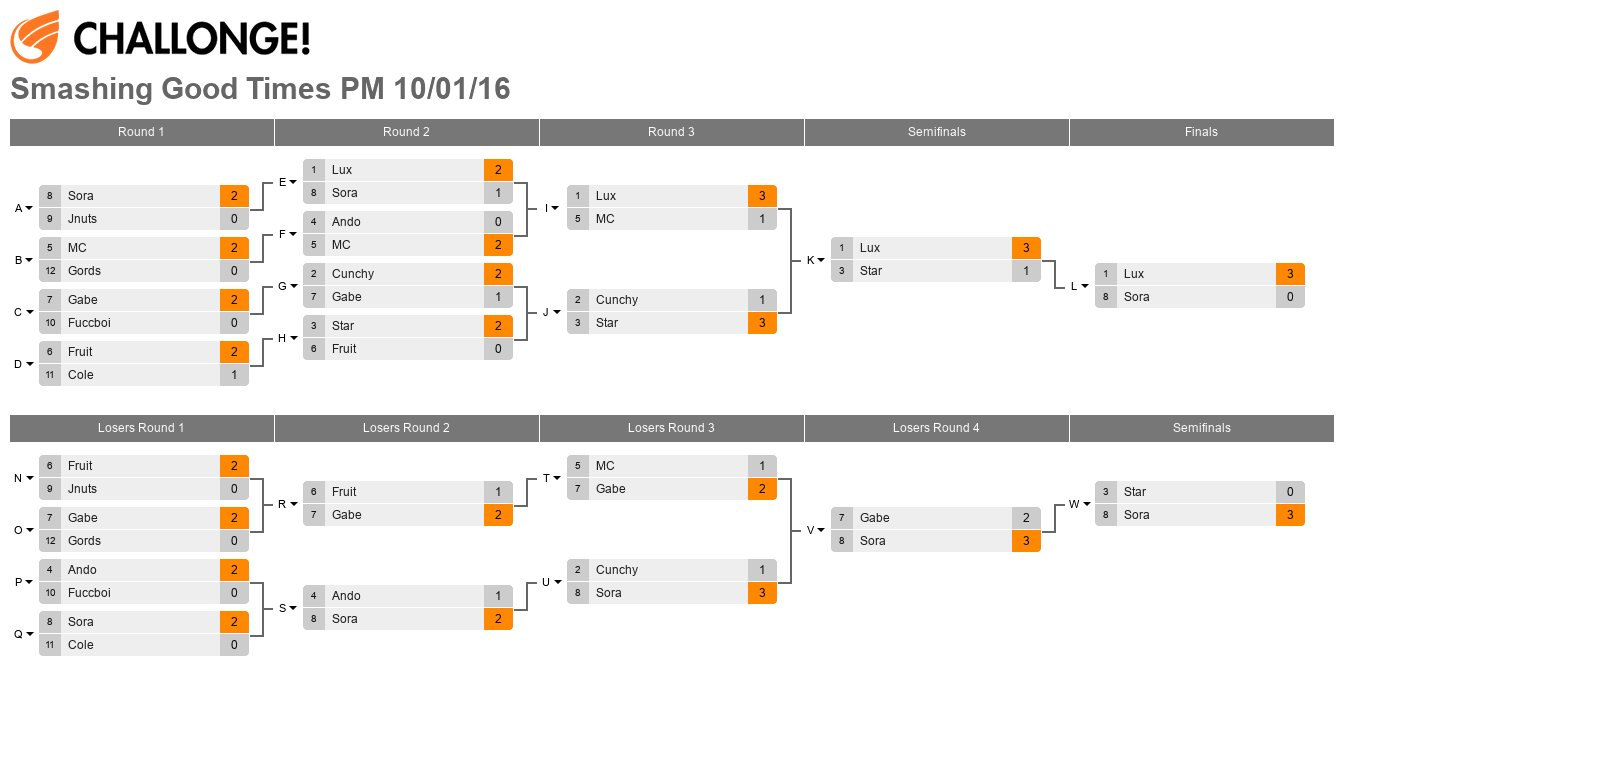 Smashing Good Times PM Pro Bracket 10/01/16 [From Pools of 21 Entrants]